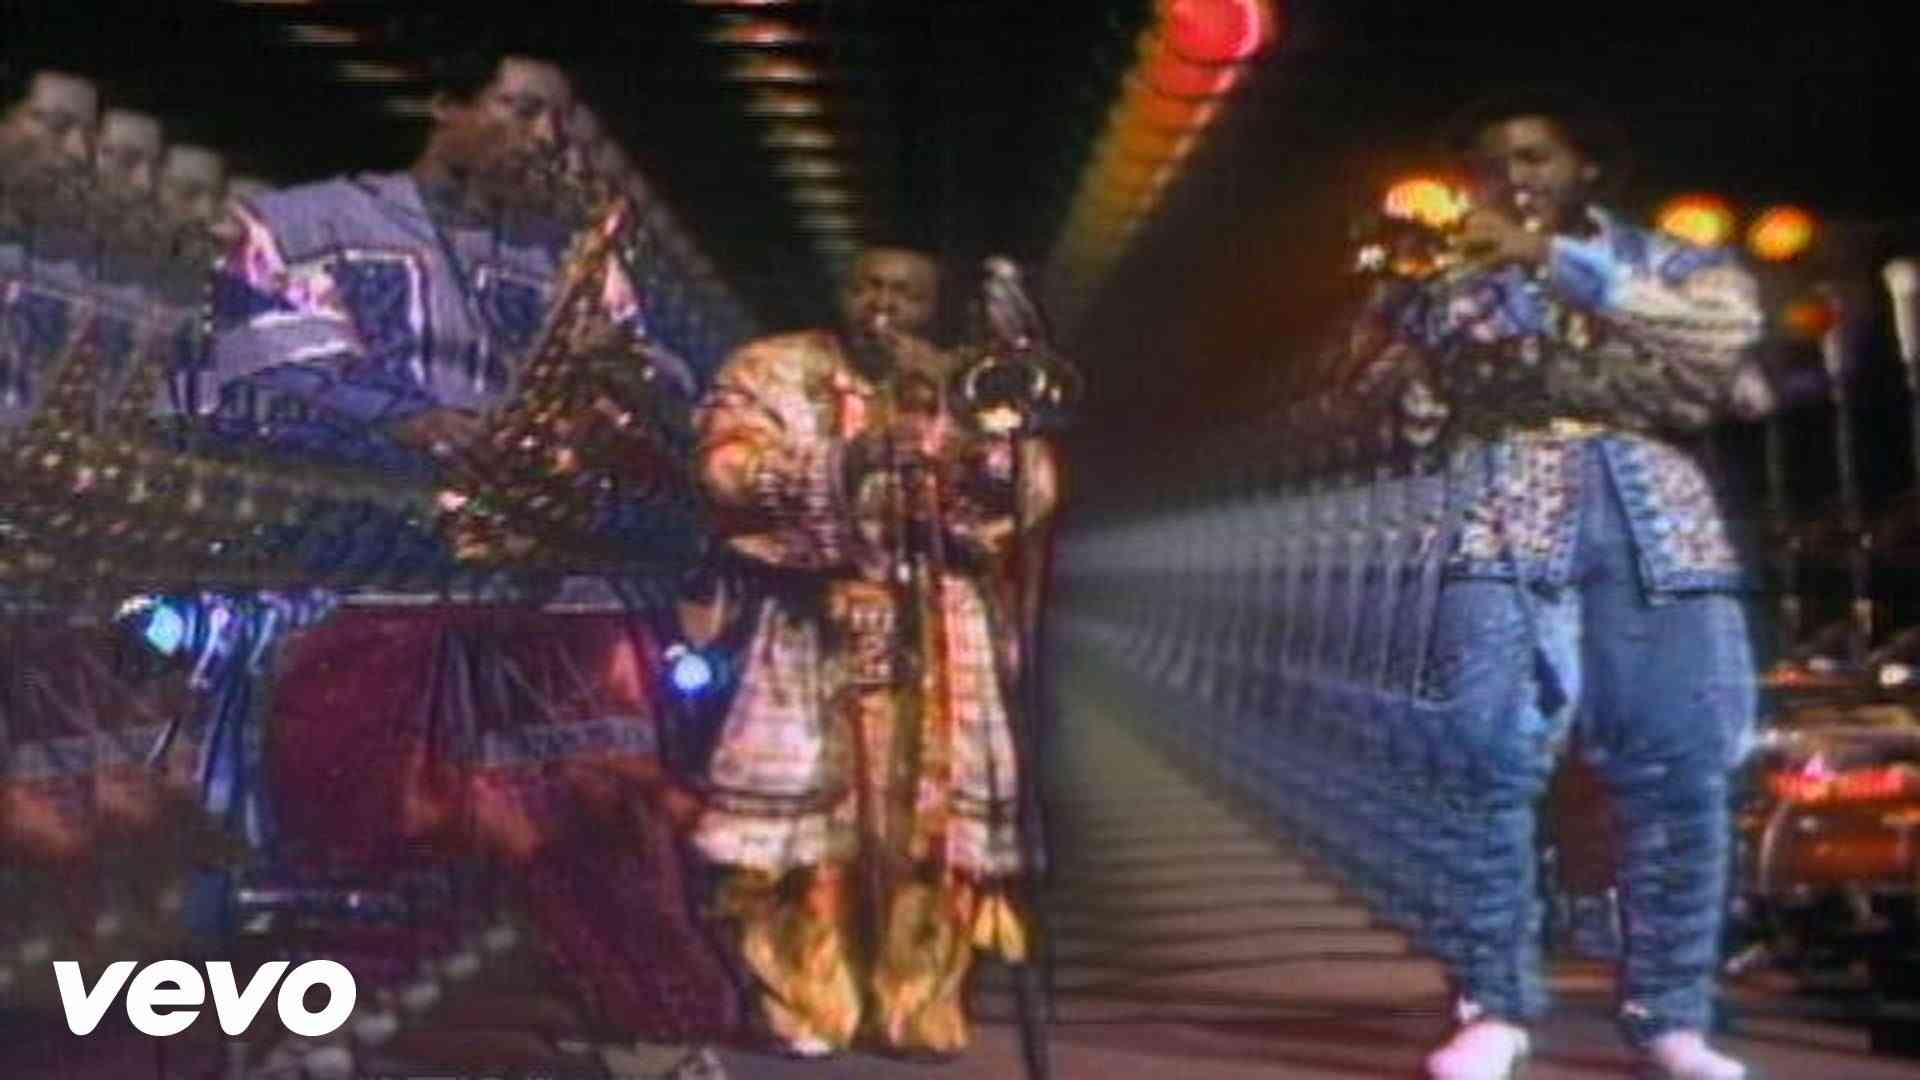 Earth, Wind & Fire - September - YouTube